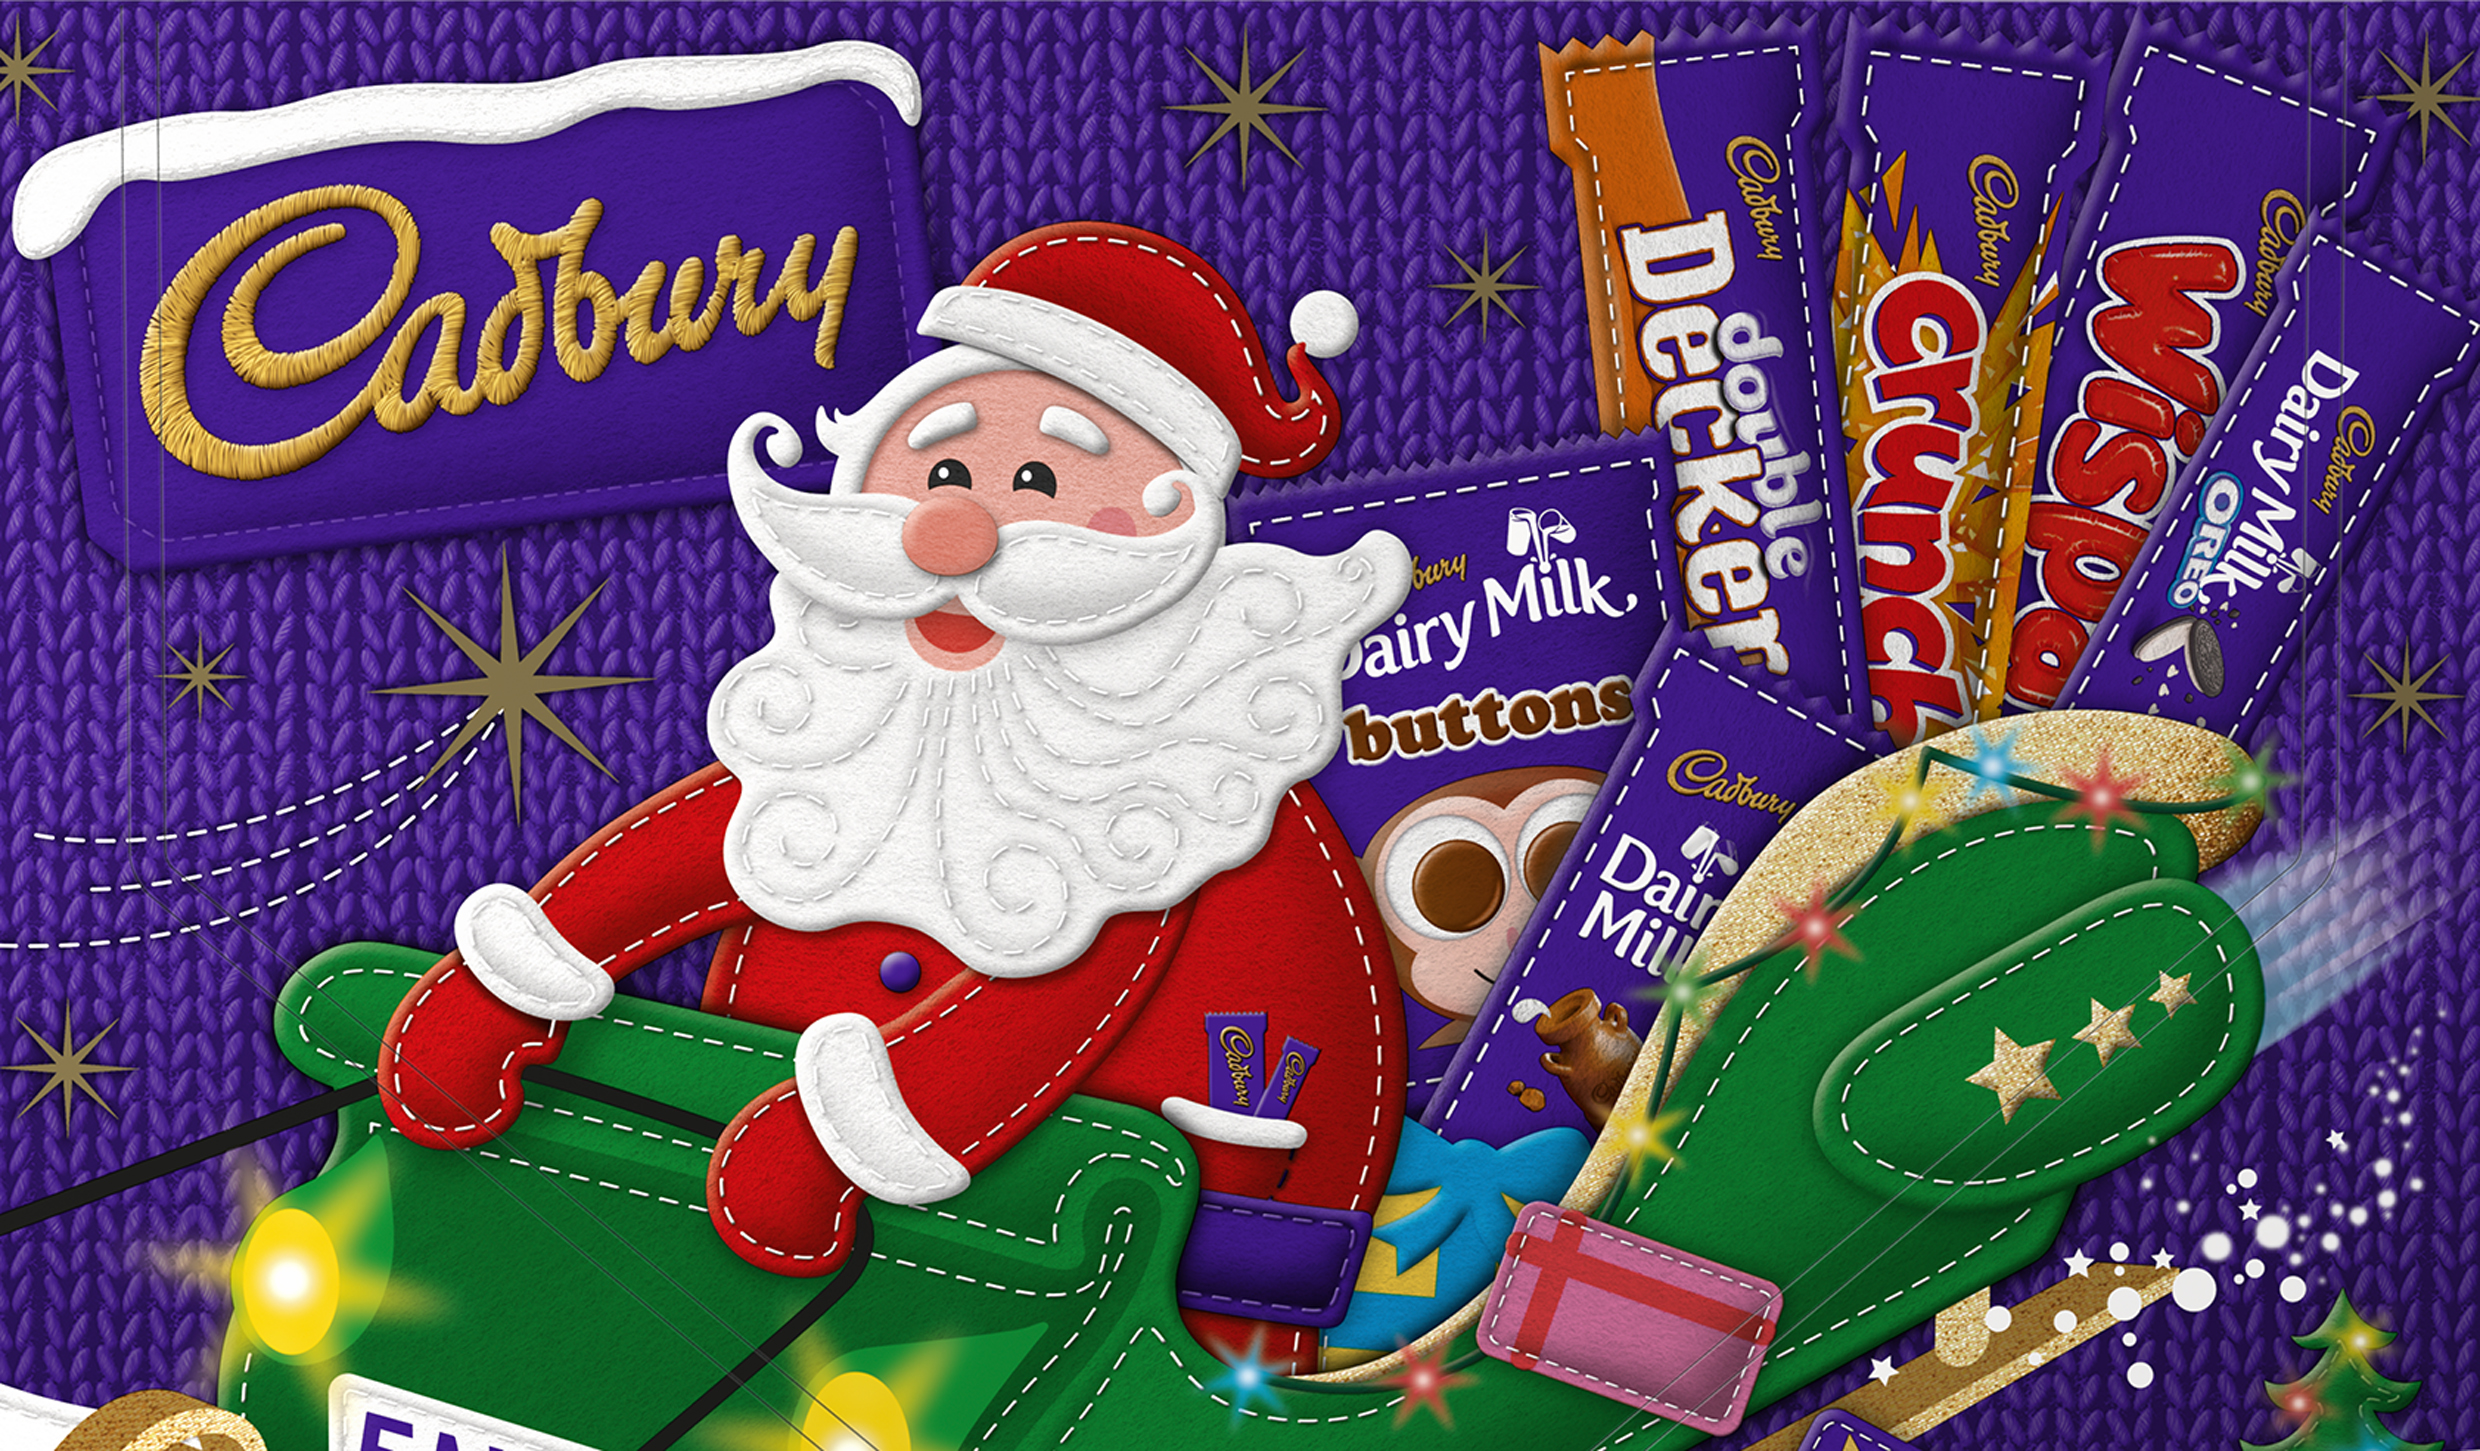 Cadbury selection box.